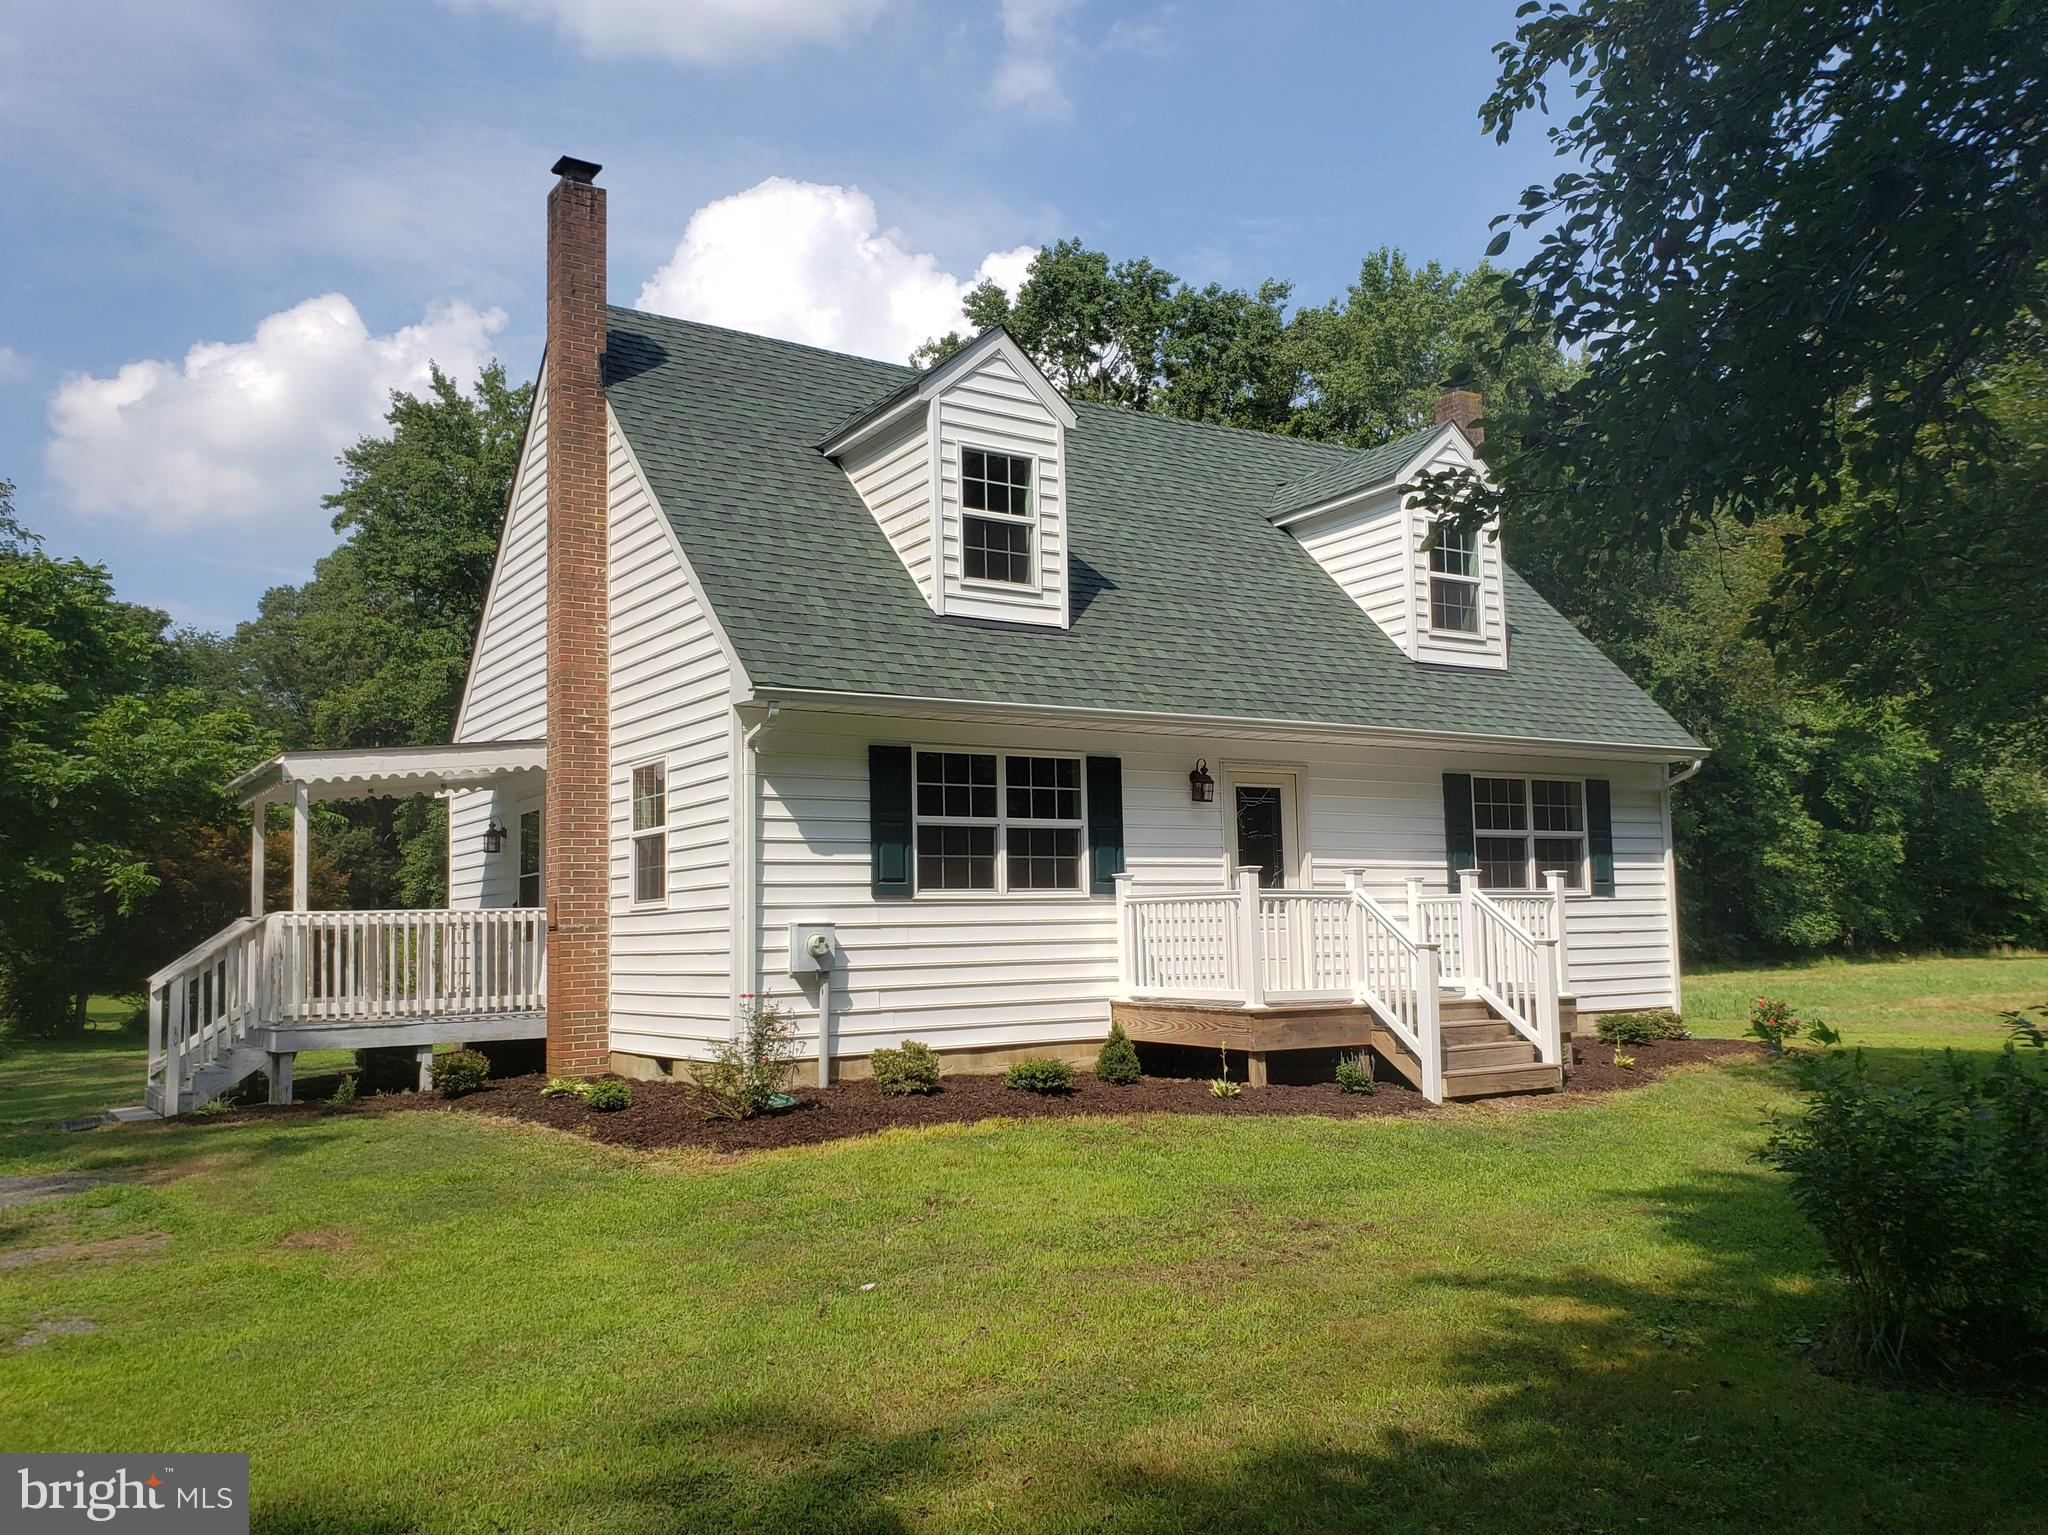 Renovated Cape Cod on 35+ acres (approx. 5 acres cleared, the rest woods), 3 bedrooms 2 baths, livin